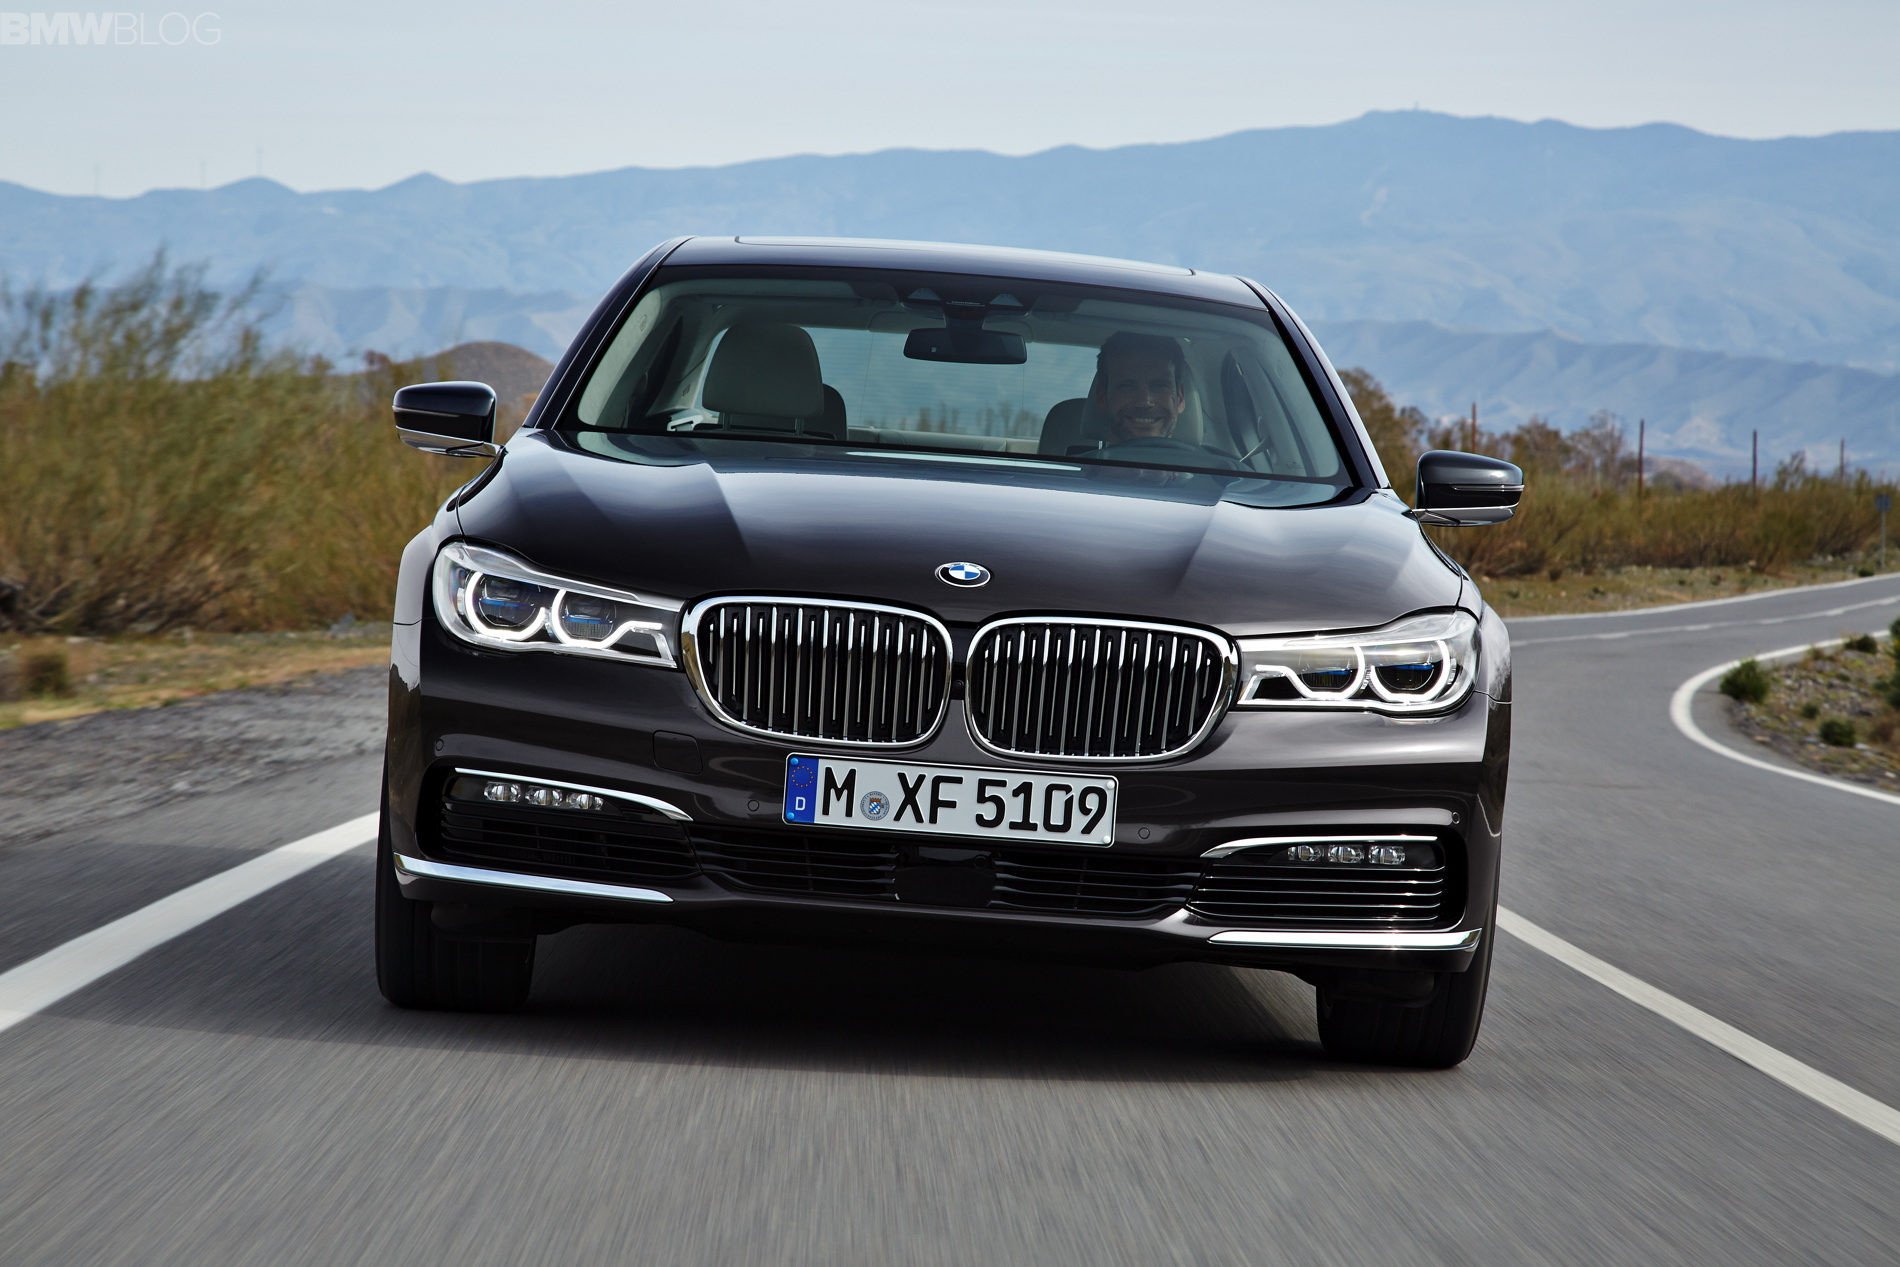 2016 bmw 7 series exterior images 1900x1200 07